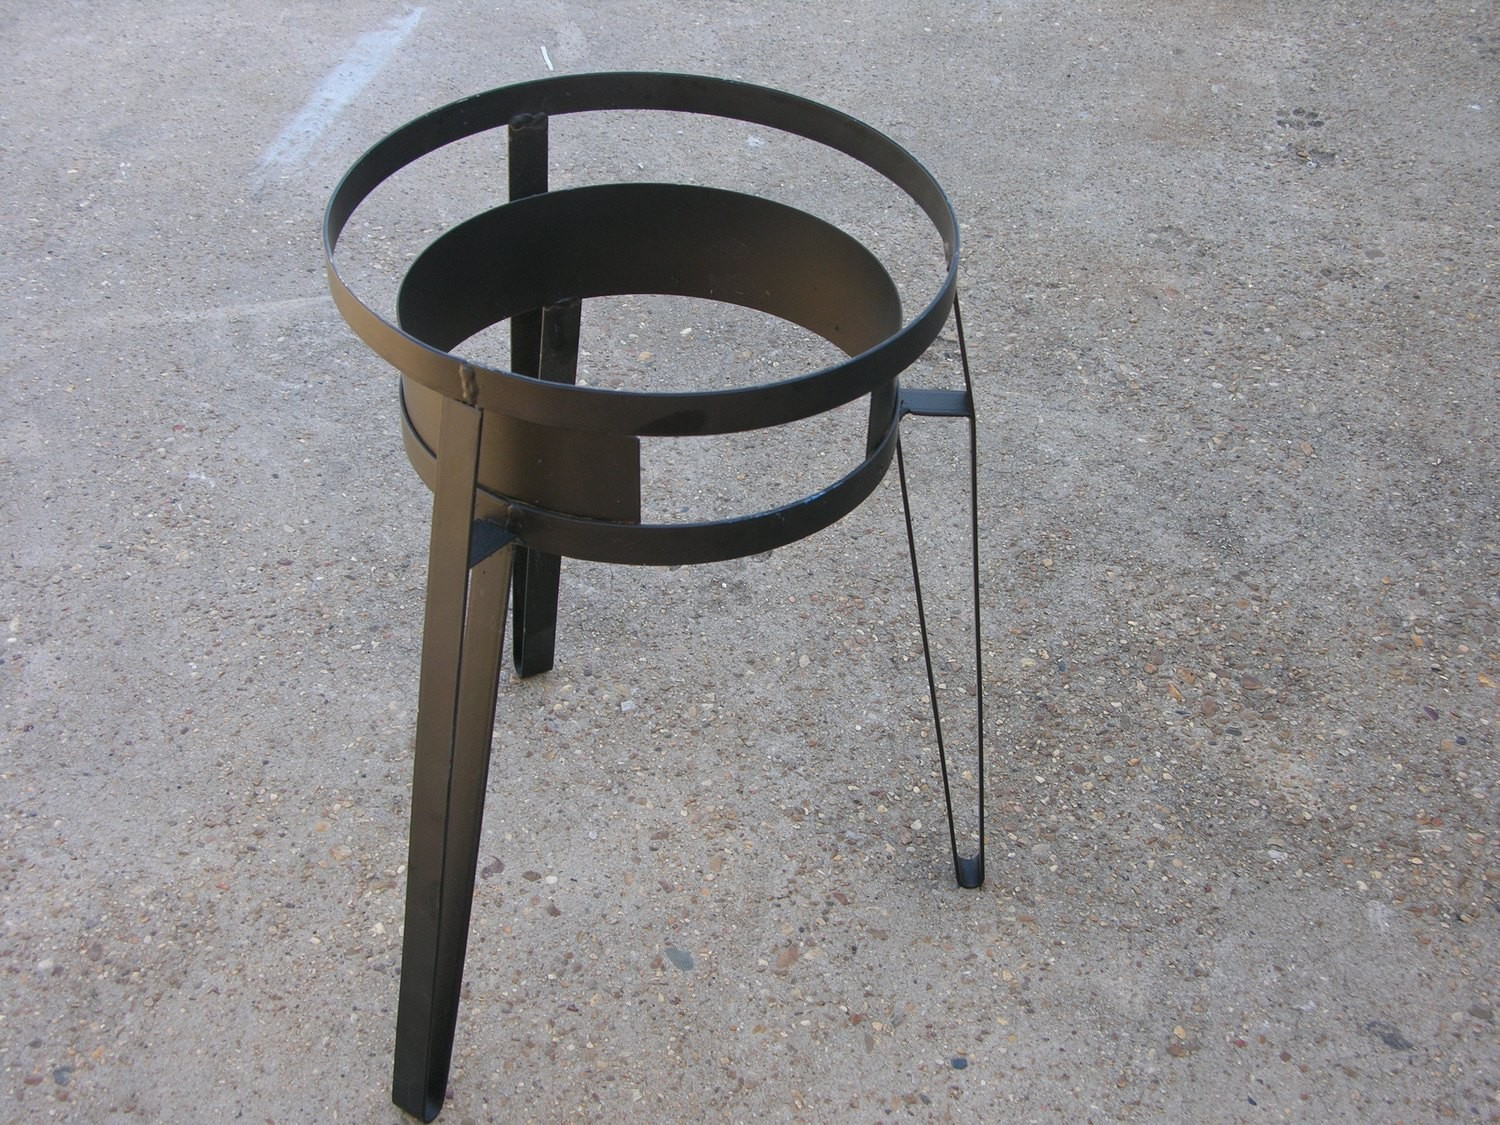 6-170              CADILLAC COOKER STAND